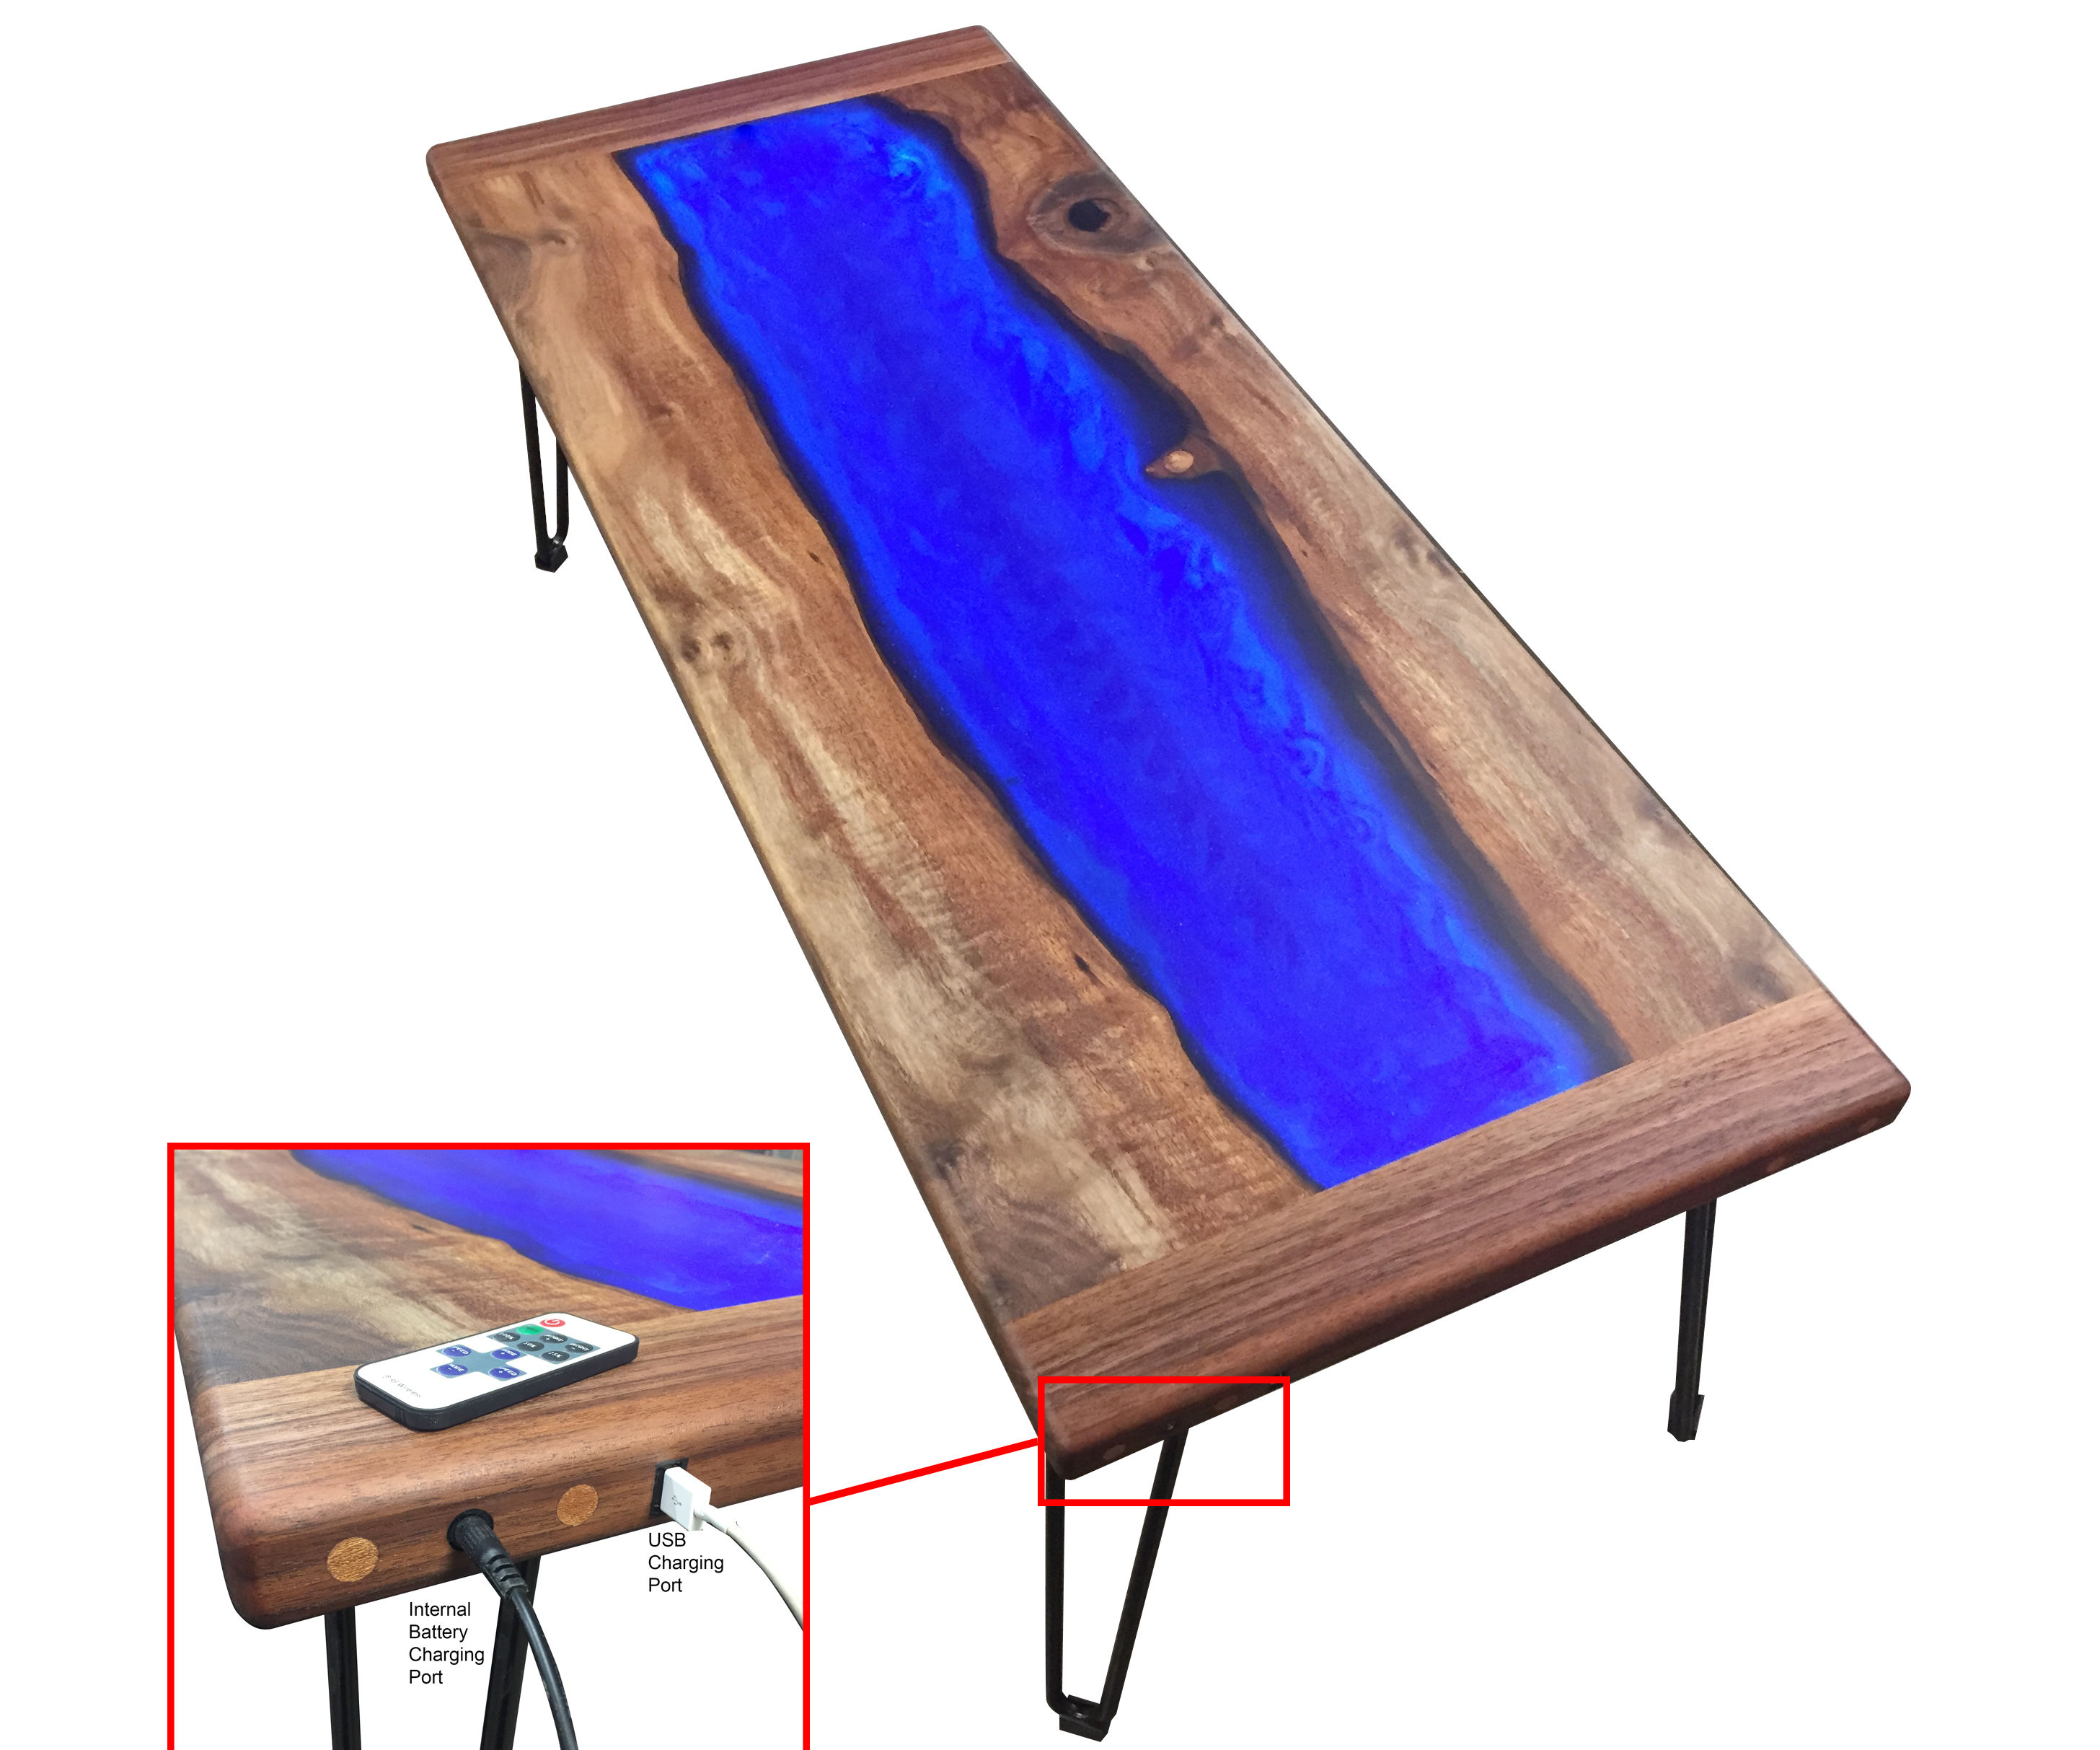 Walnut,and LED Lit Resin River Coffee Table With Rechargeable Battery Bank for Charging Your Phone!